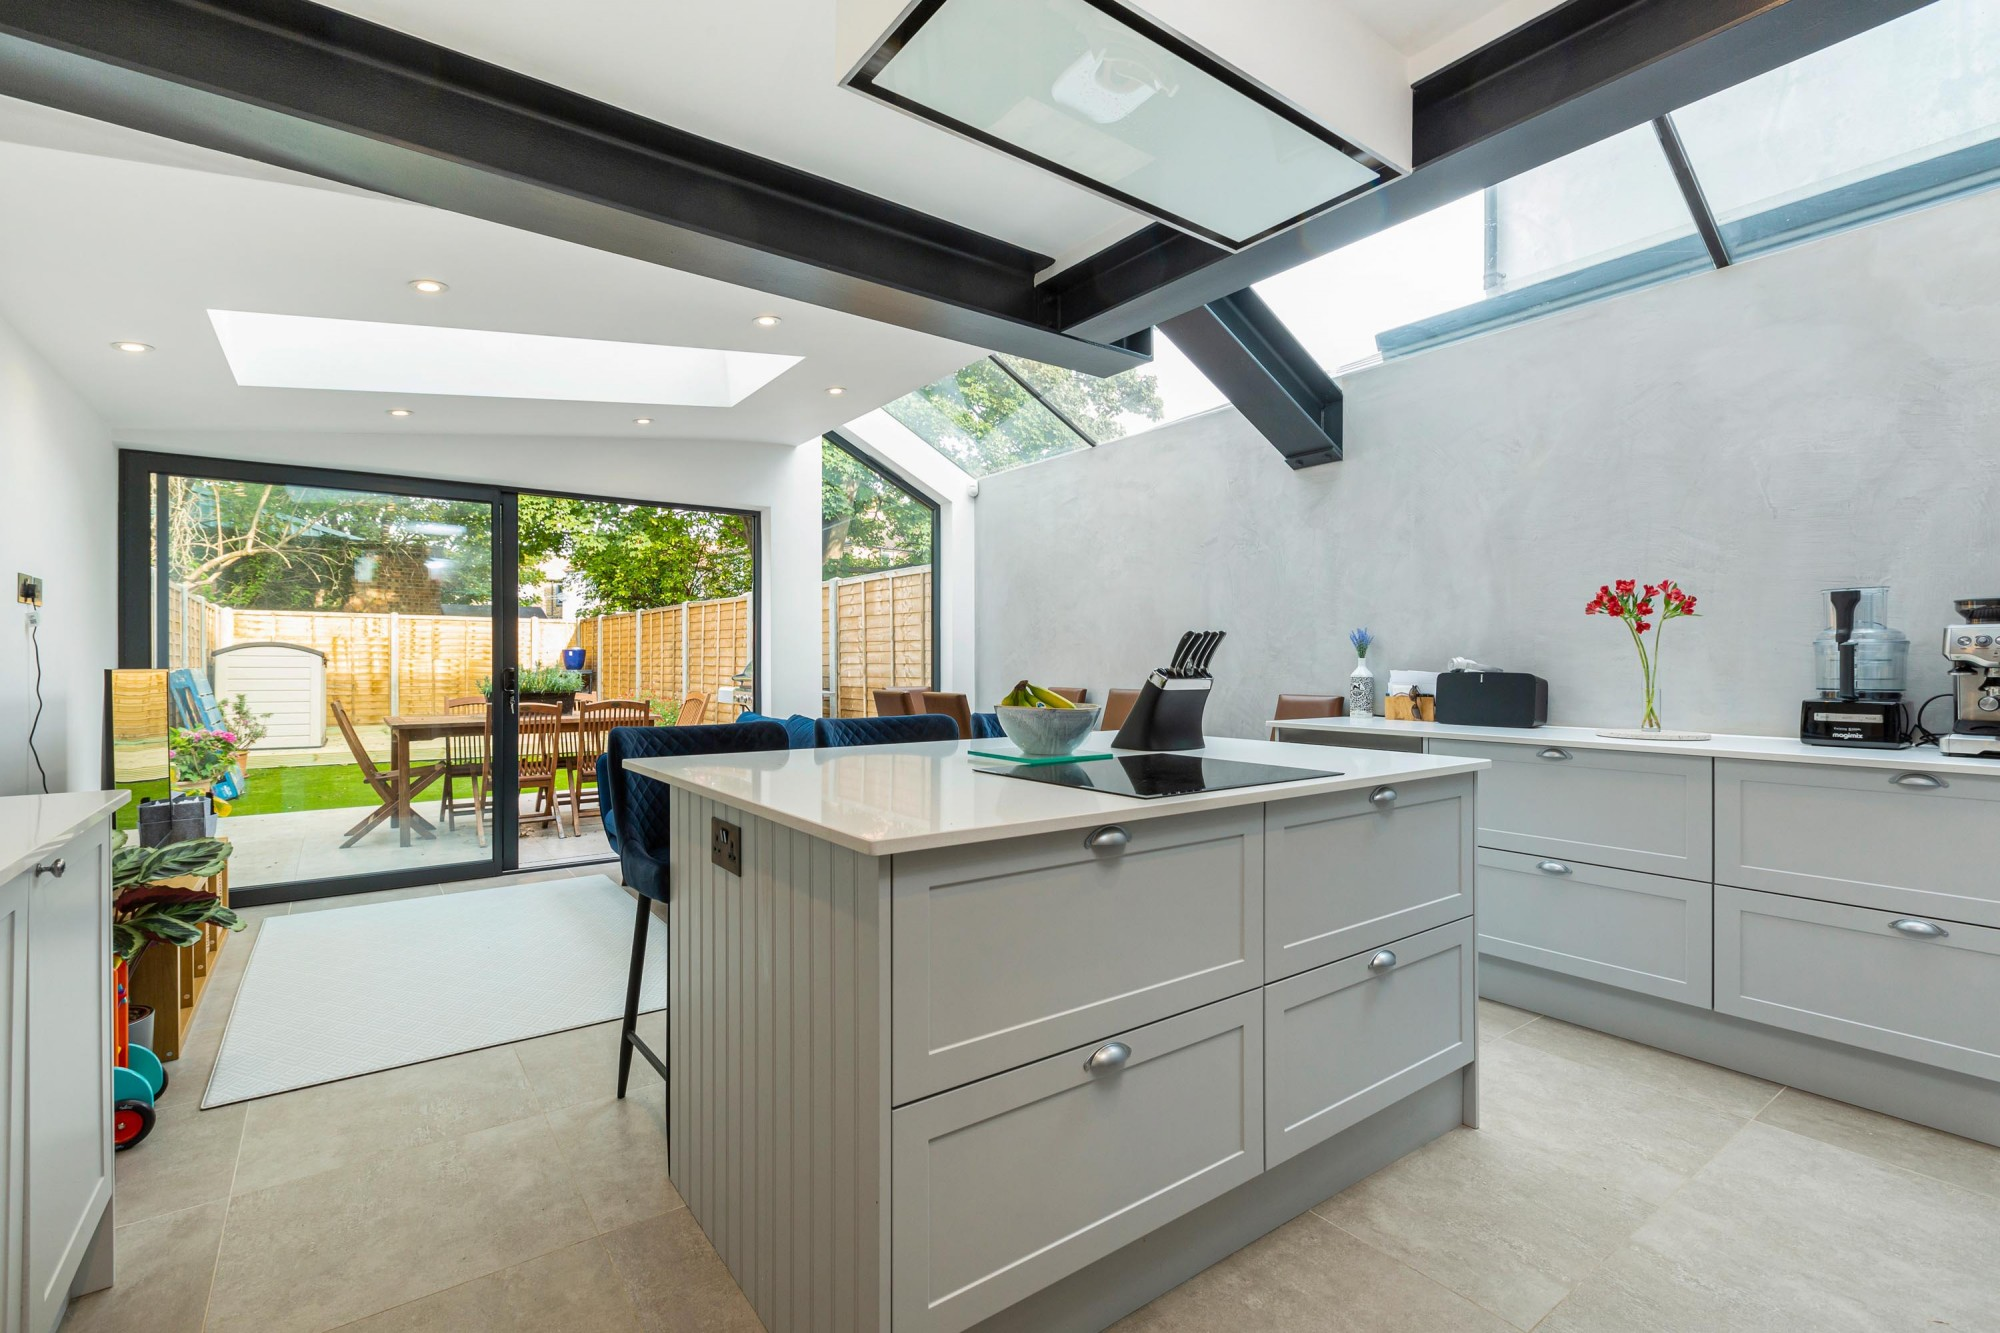 Hydethorpe Road SW12 - £1,295,000